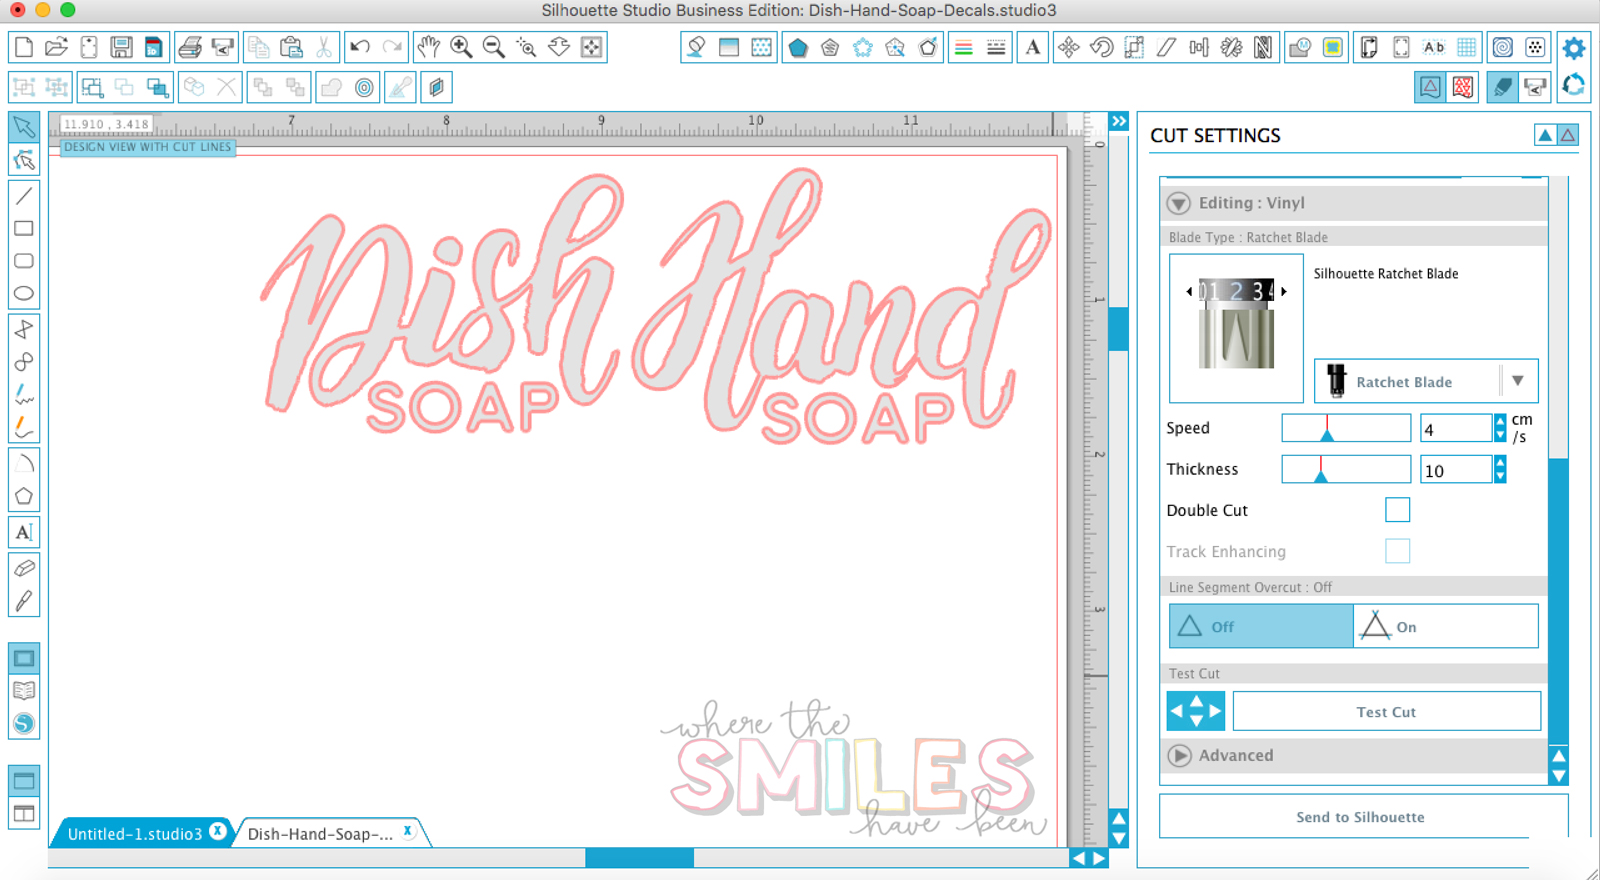 Screenshot of Silhouette Studio with designs for dish and hand soap etched glass vinyl decals